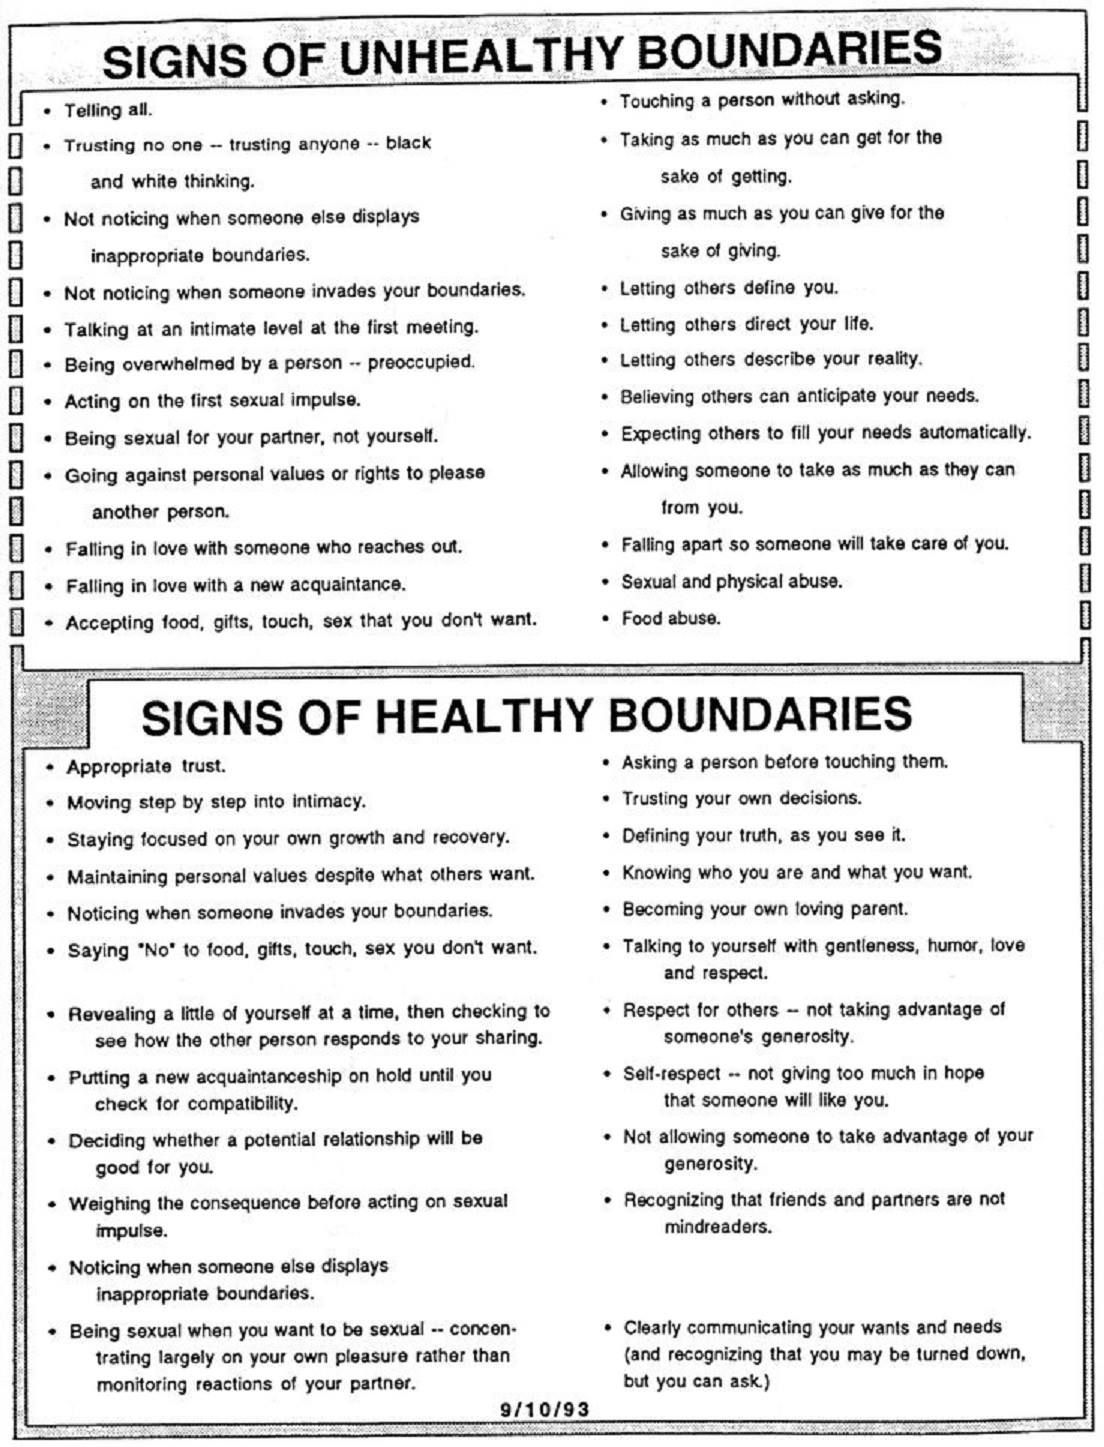 Unhealthy Vs Healthy Boundaries